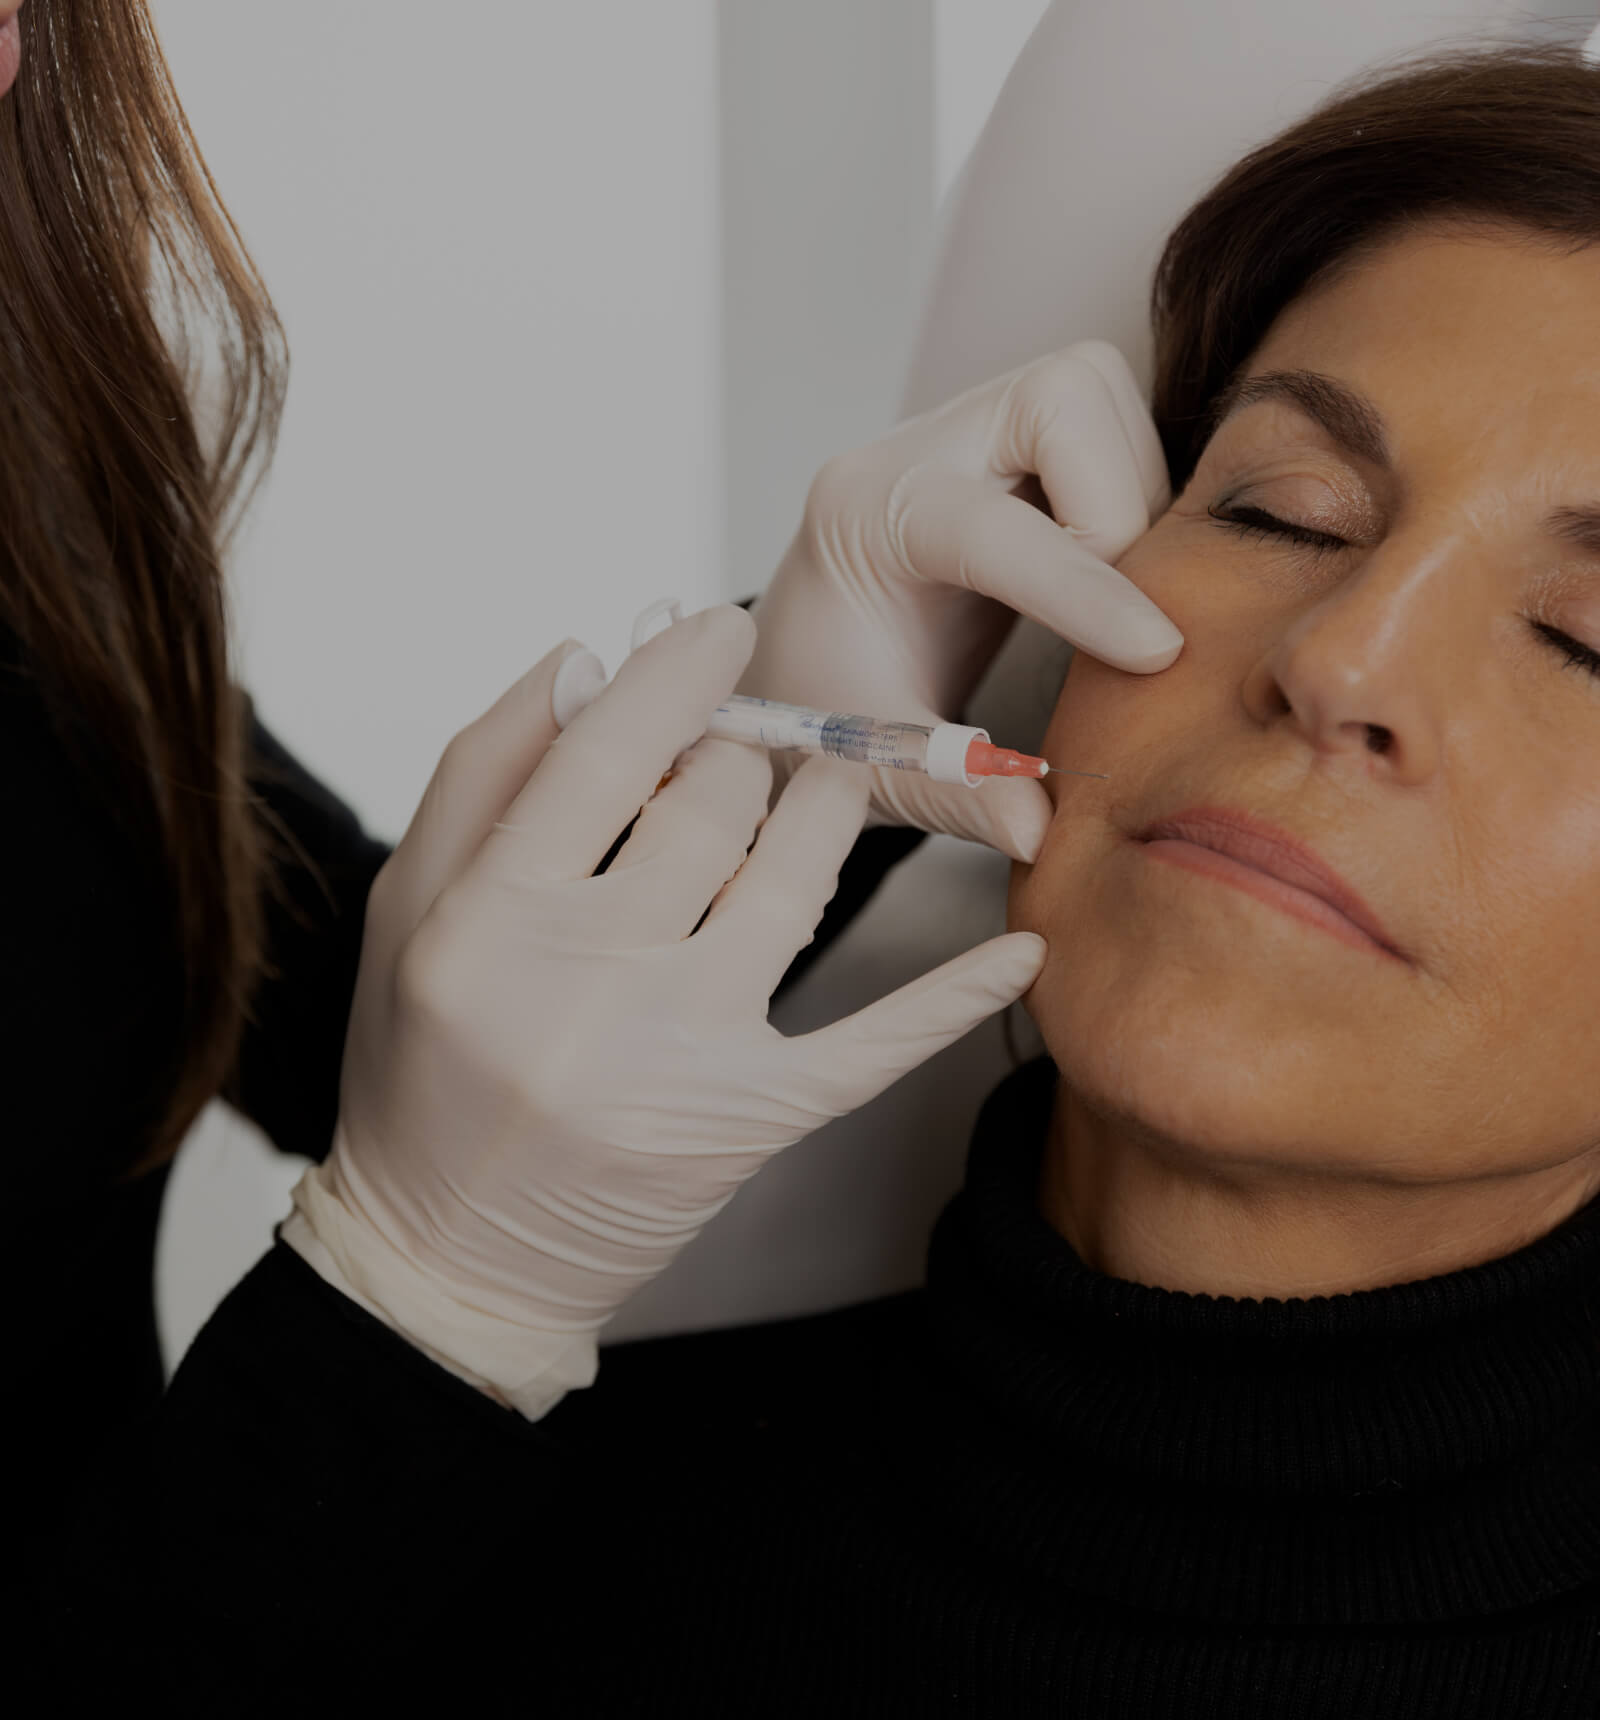 A doctor at Clinique Chloé doing Skinboosters injections into a patient's nasolabial folds